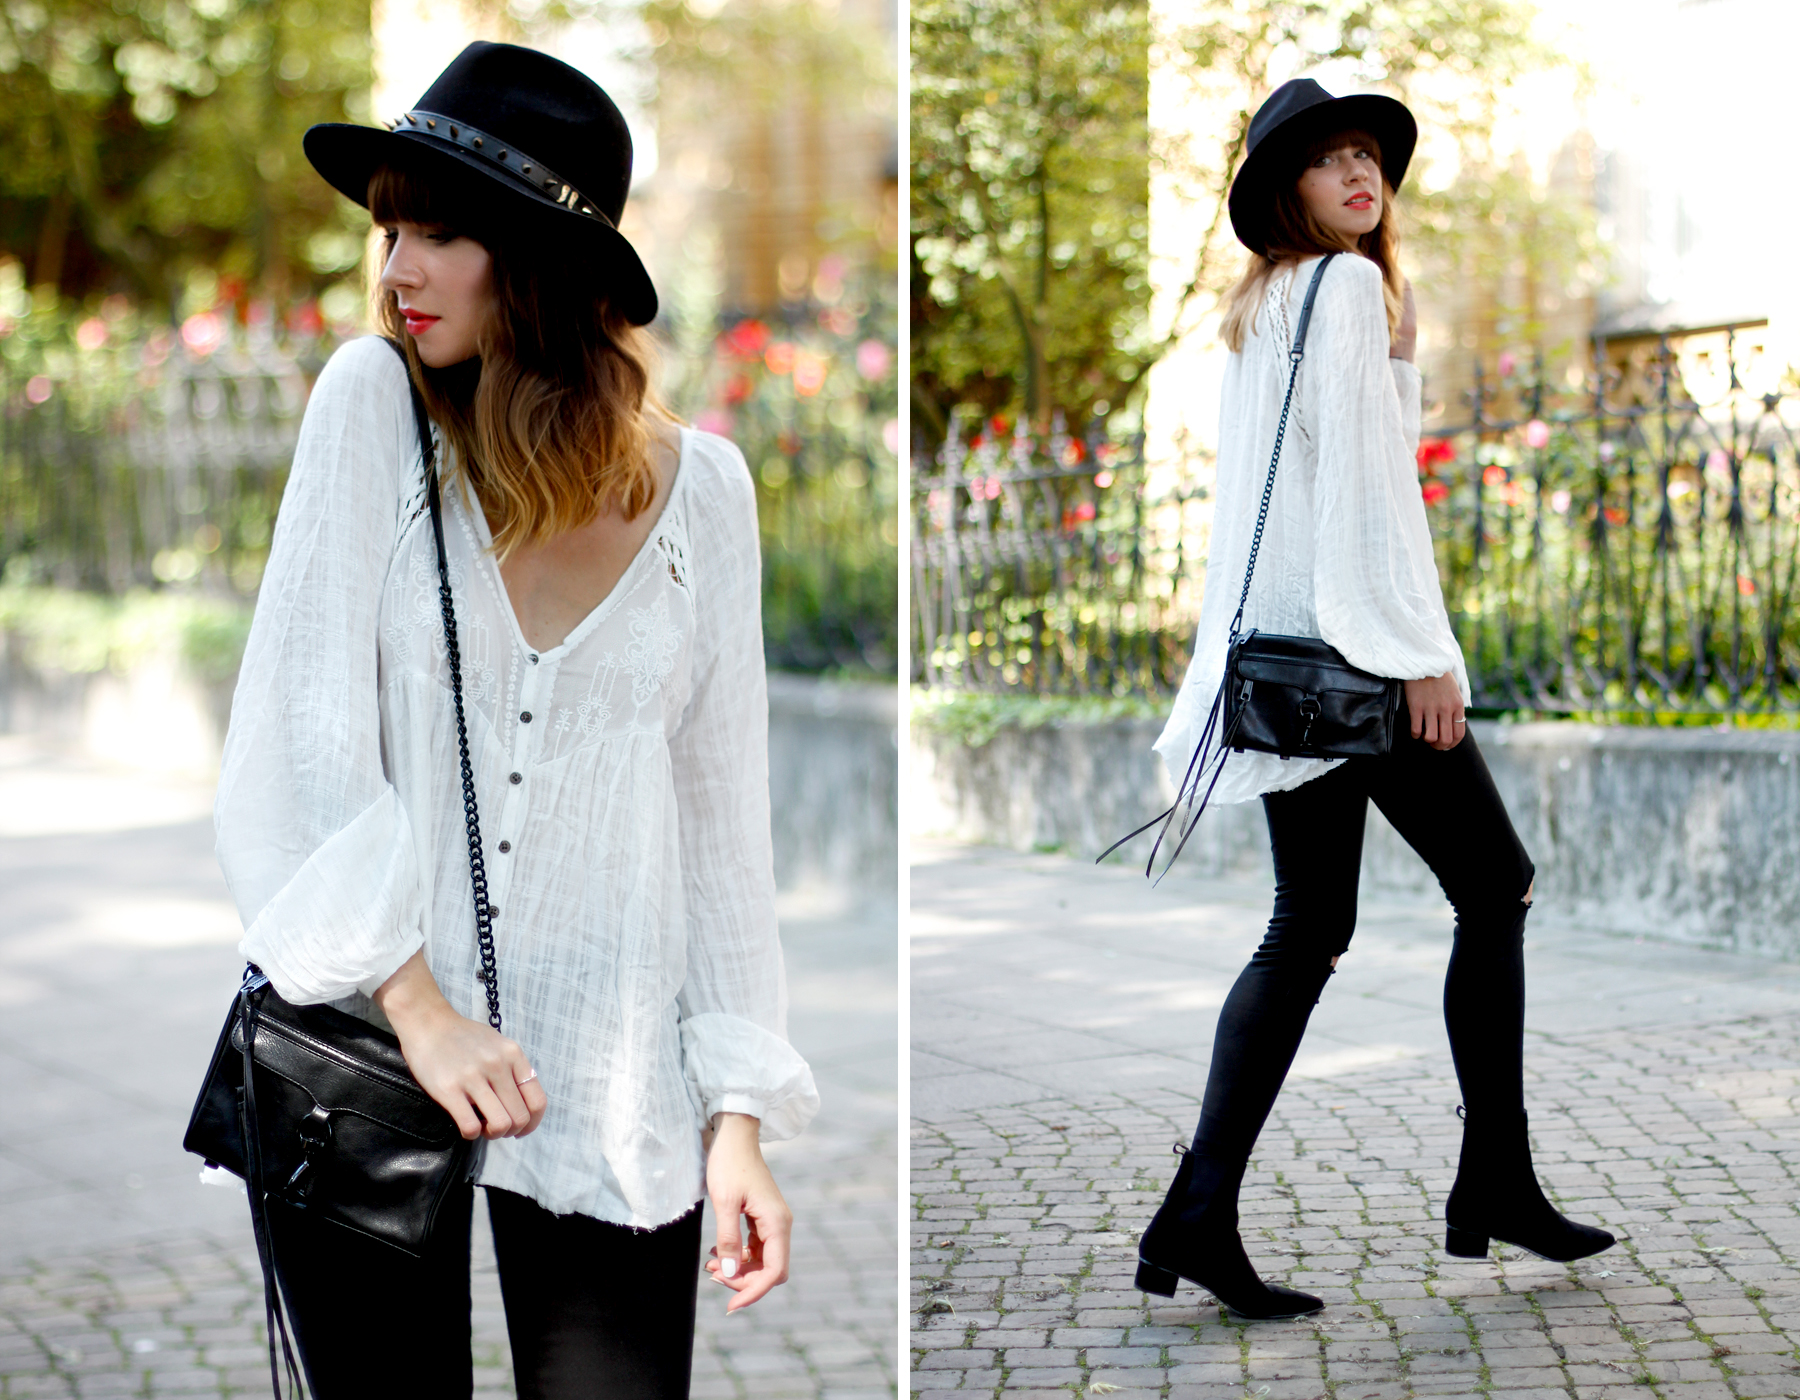 outfit hippie blouse shopbop ash booties berenice hat rebecca minkoff bag autumn fall look black and white cats & dogs fashion blog düsseldorf hannover ootd ricarda schernus blog 5